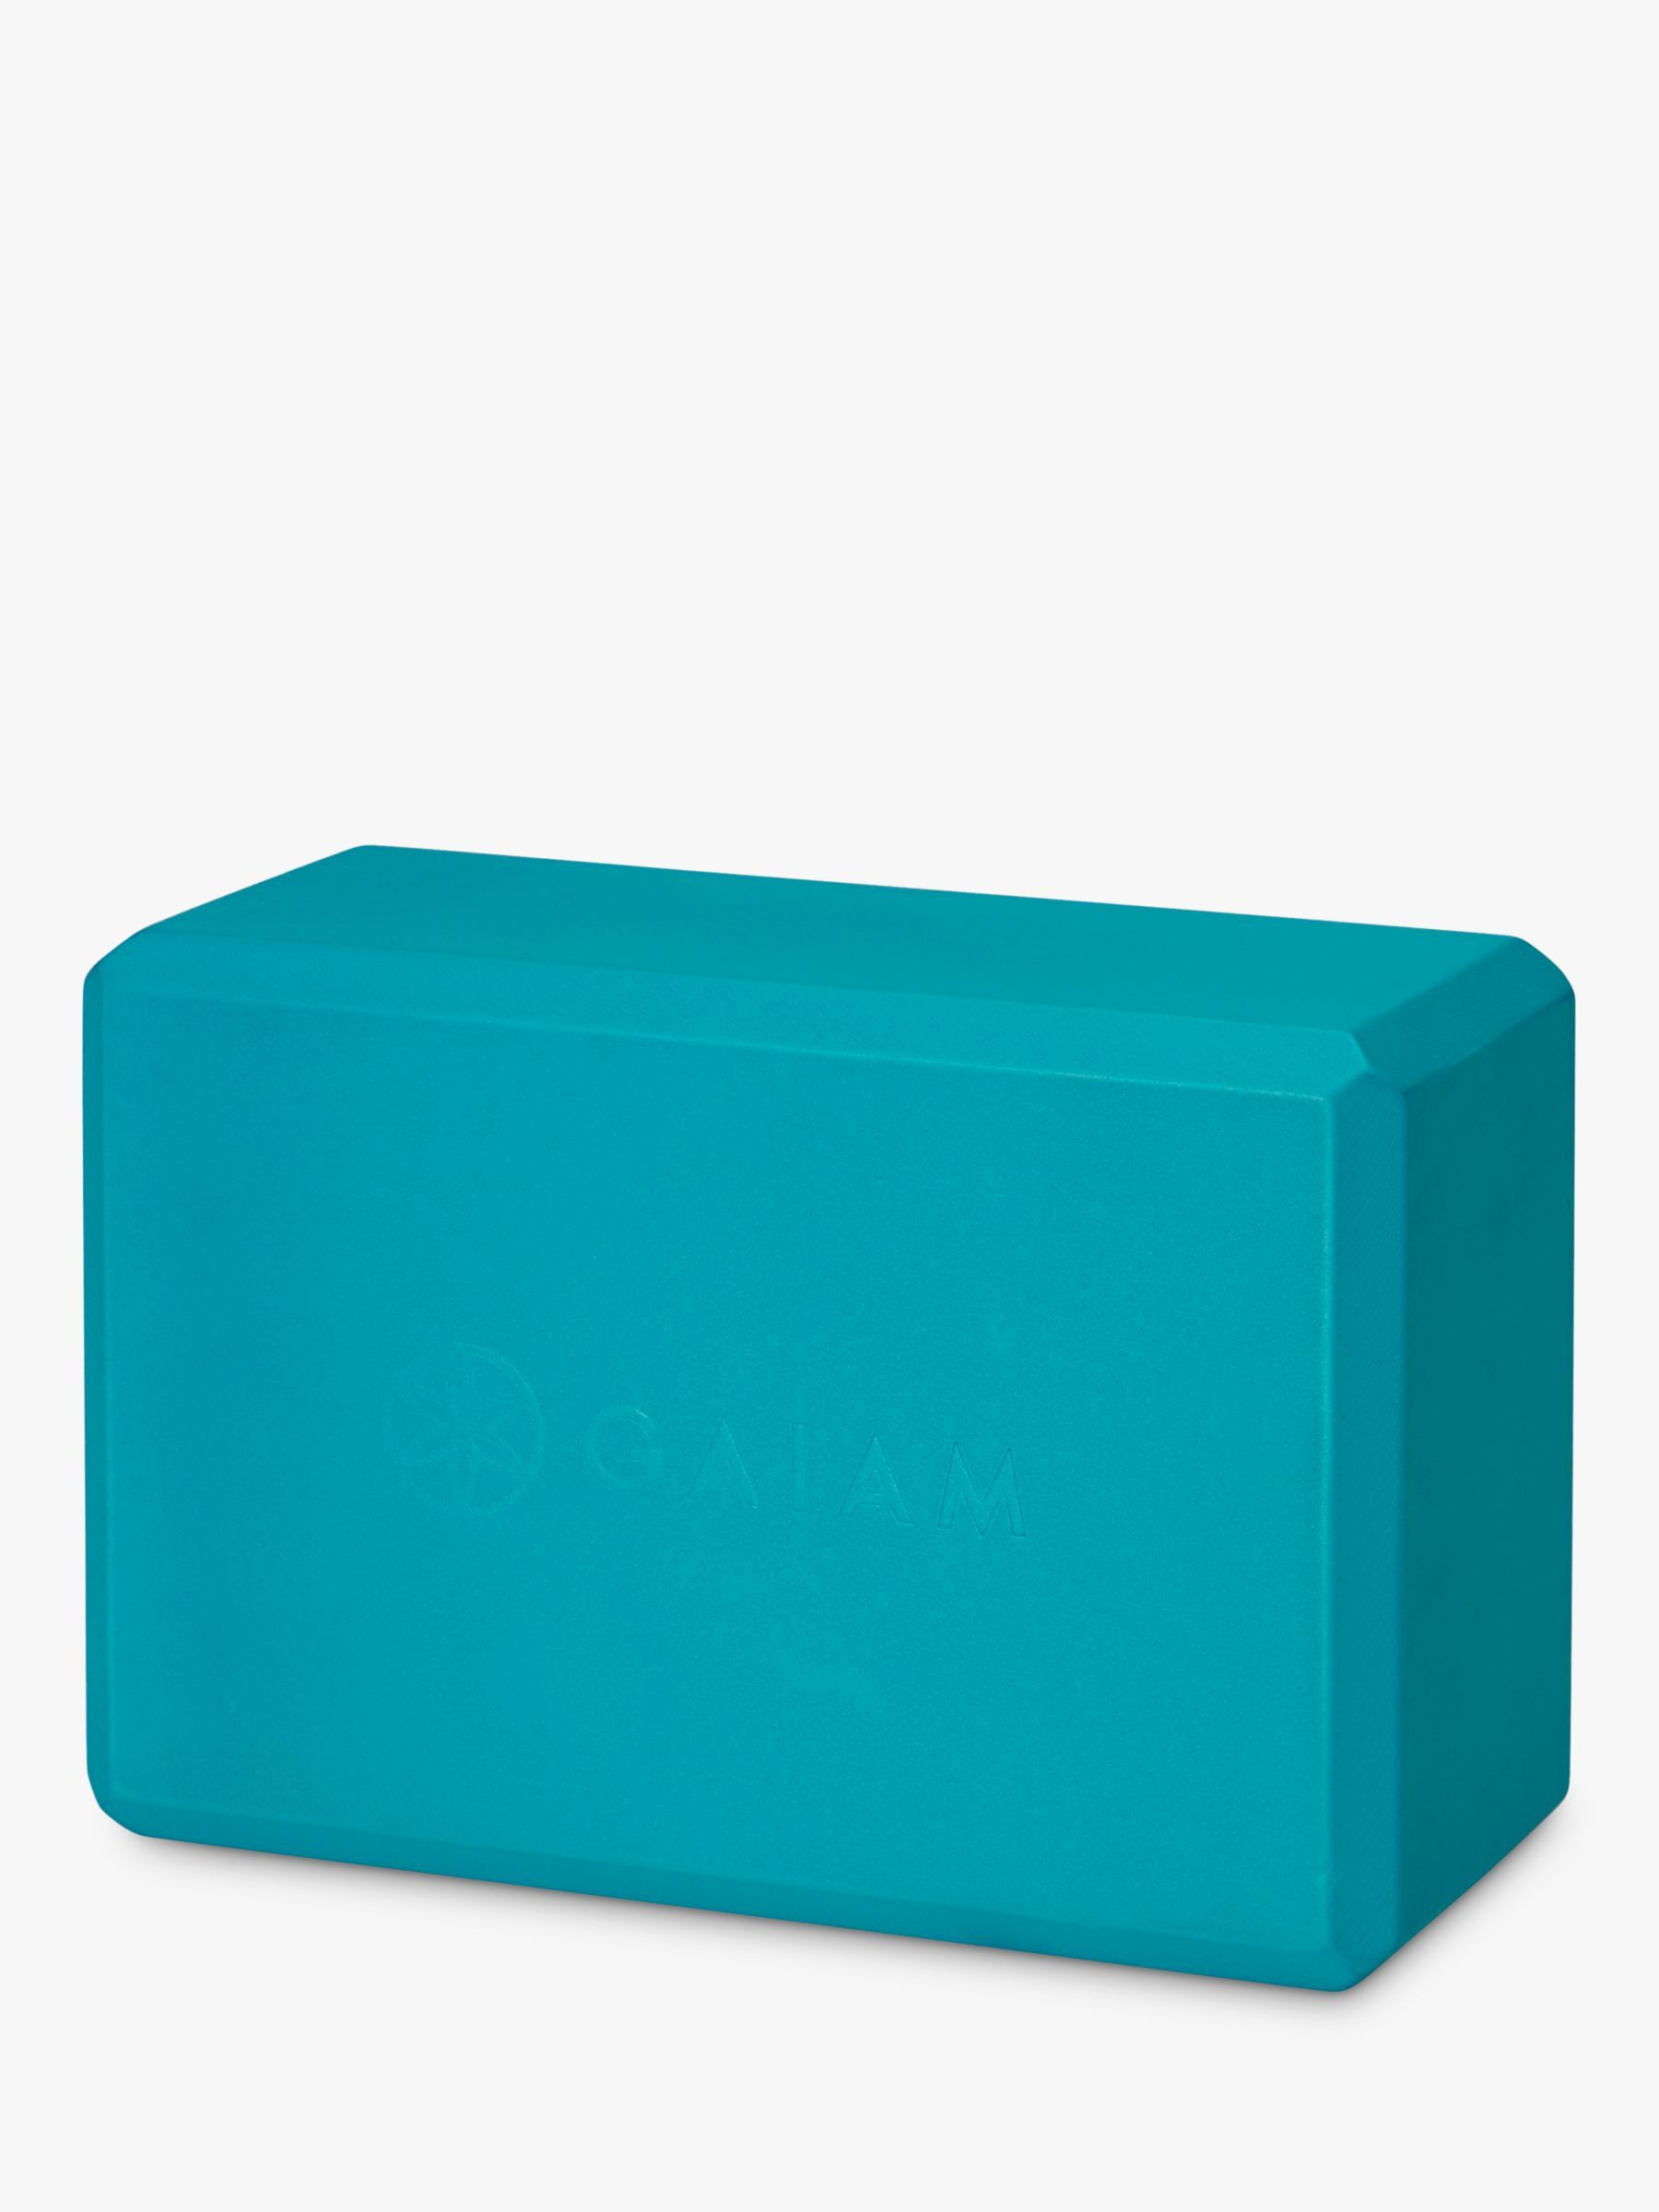 Gaiam Essentials Yoga Block Vivid Blue